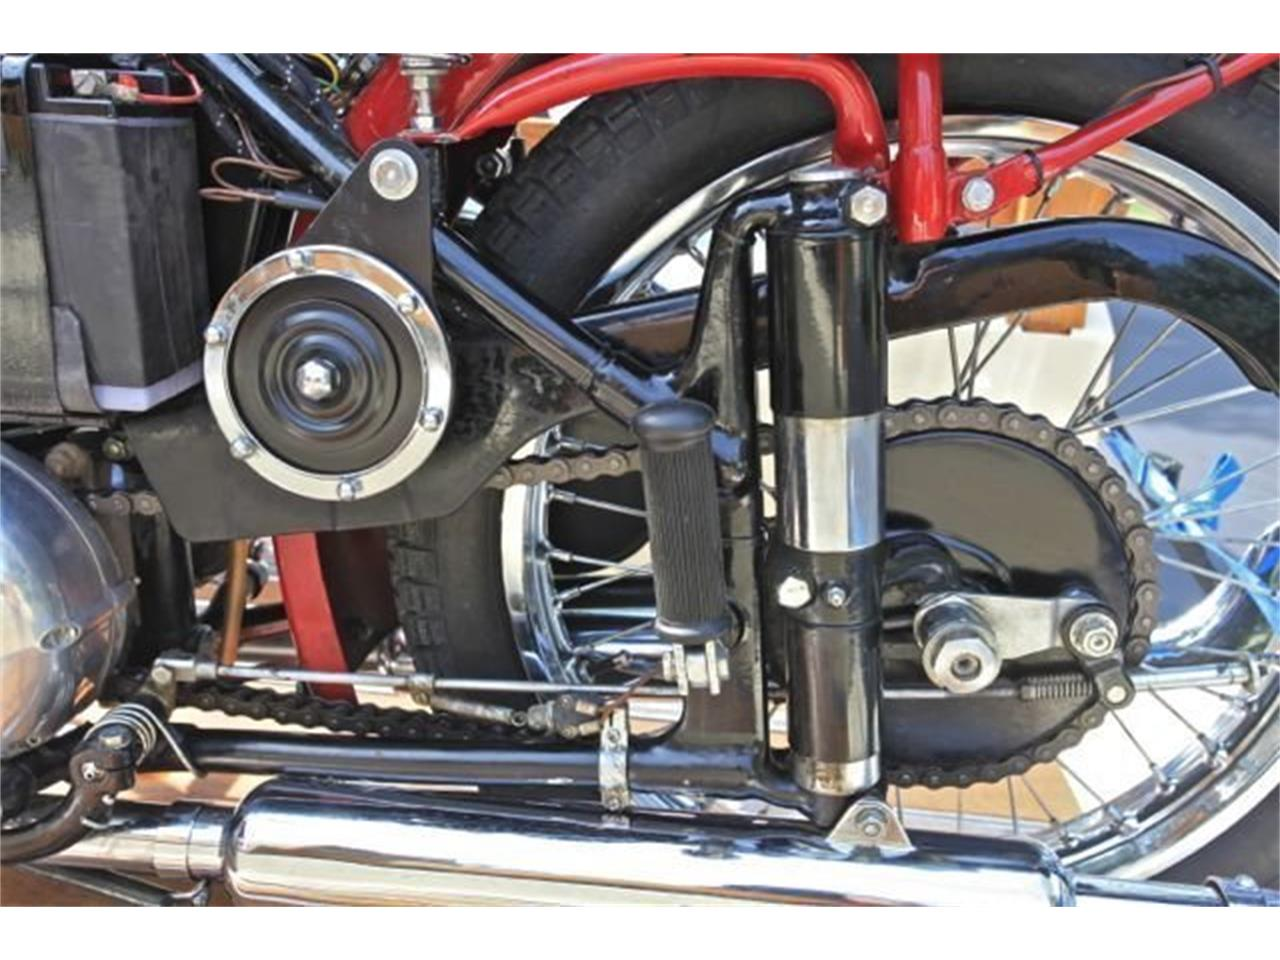 Large Picture of 1950 BSA Motorcycle located in Washington - $15,000.00 Offered by Drager's Classics - NAM7